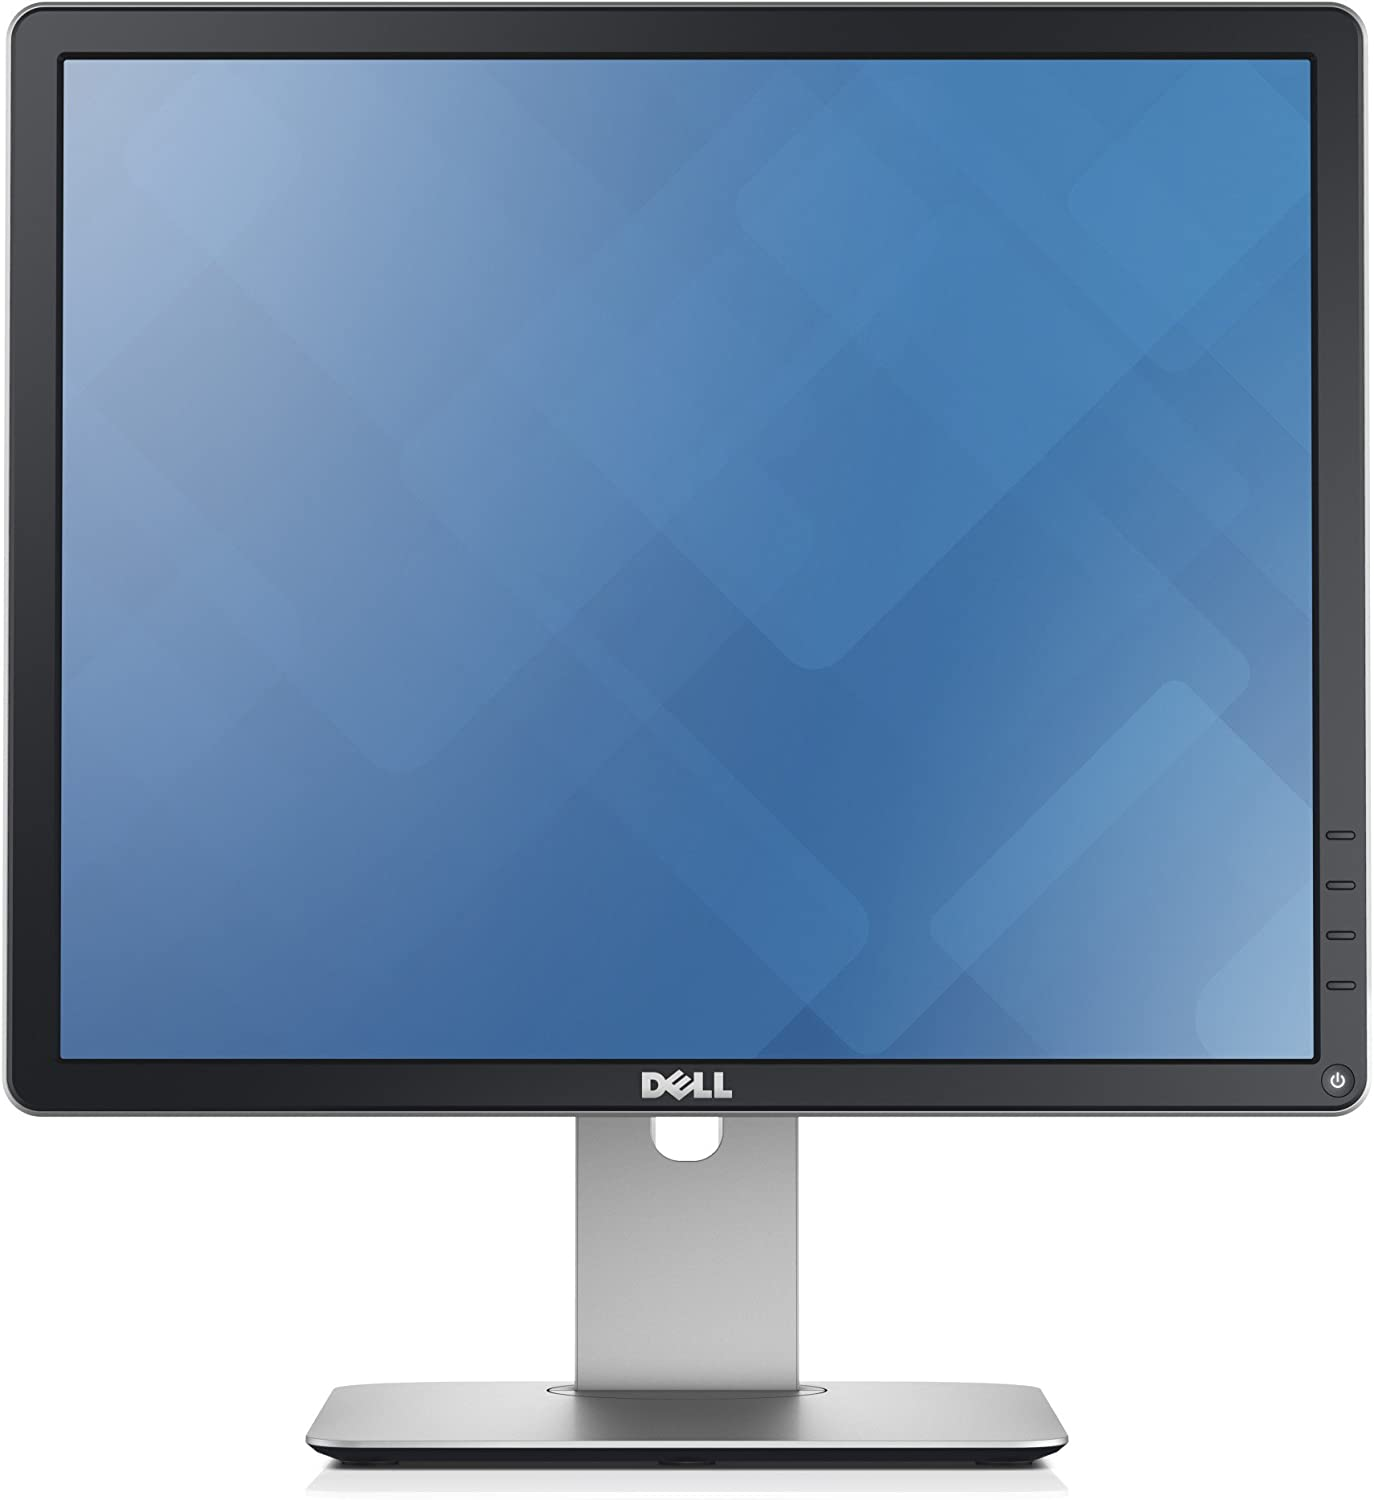 Ecran LED 19 DELL P1914S 5:4 NOIR Avec socle - 1280 x 1024 - IPS - 250 cd/m2 - 8 ms - DVI-D, VGA, Displayport